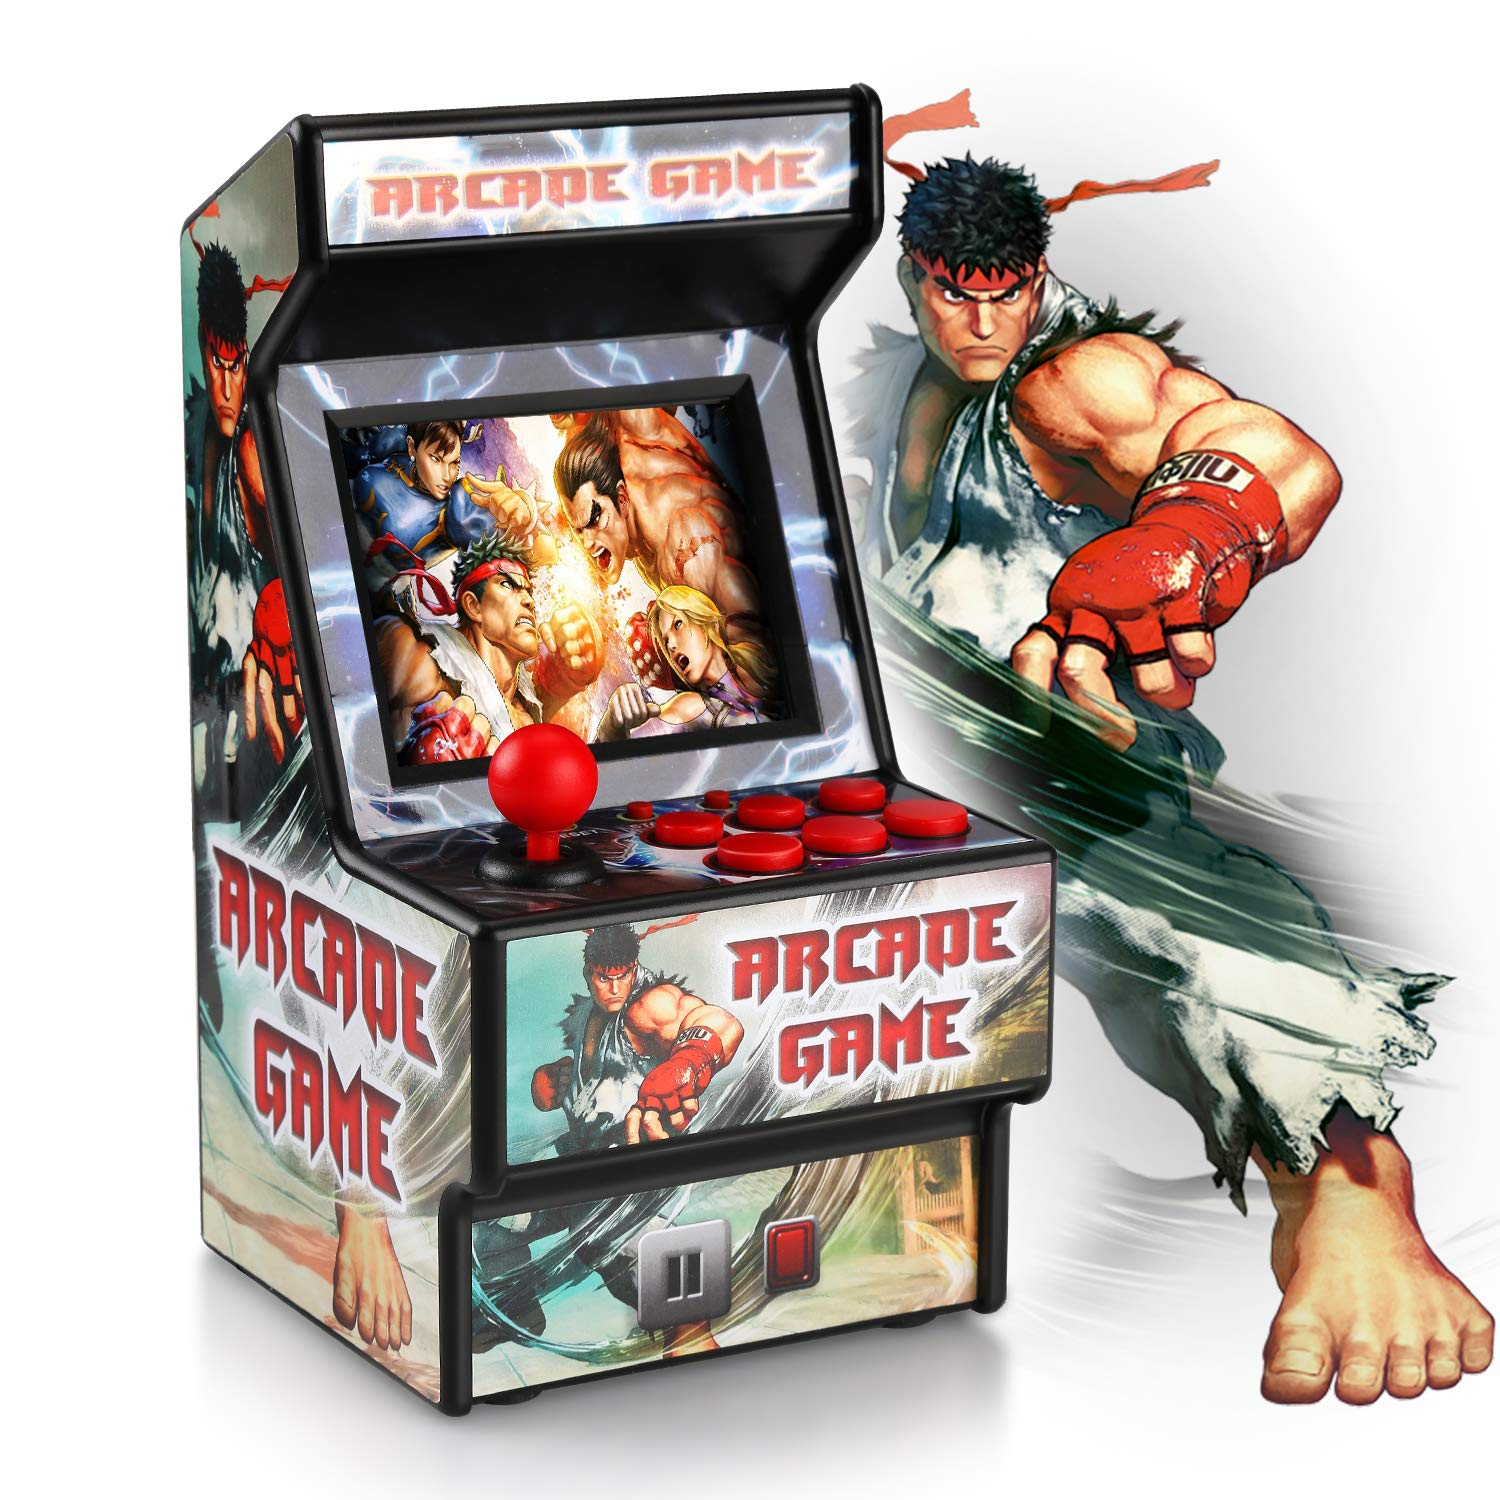 Golden Security Classic Portable Arcade Machine 156 Built-in 16 bits Games